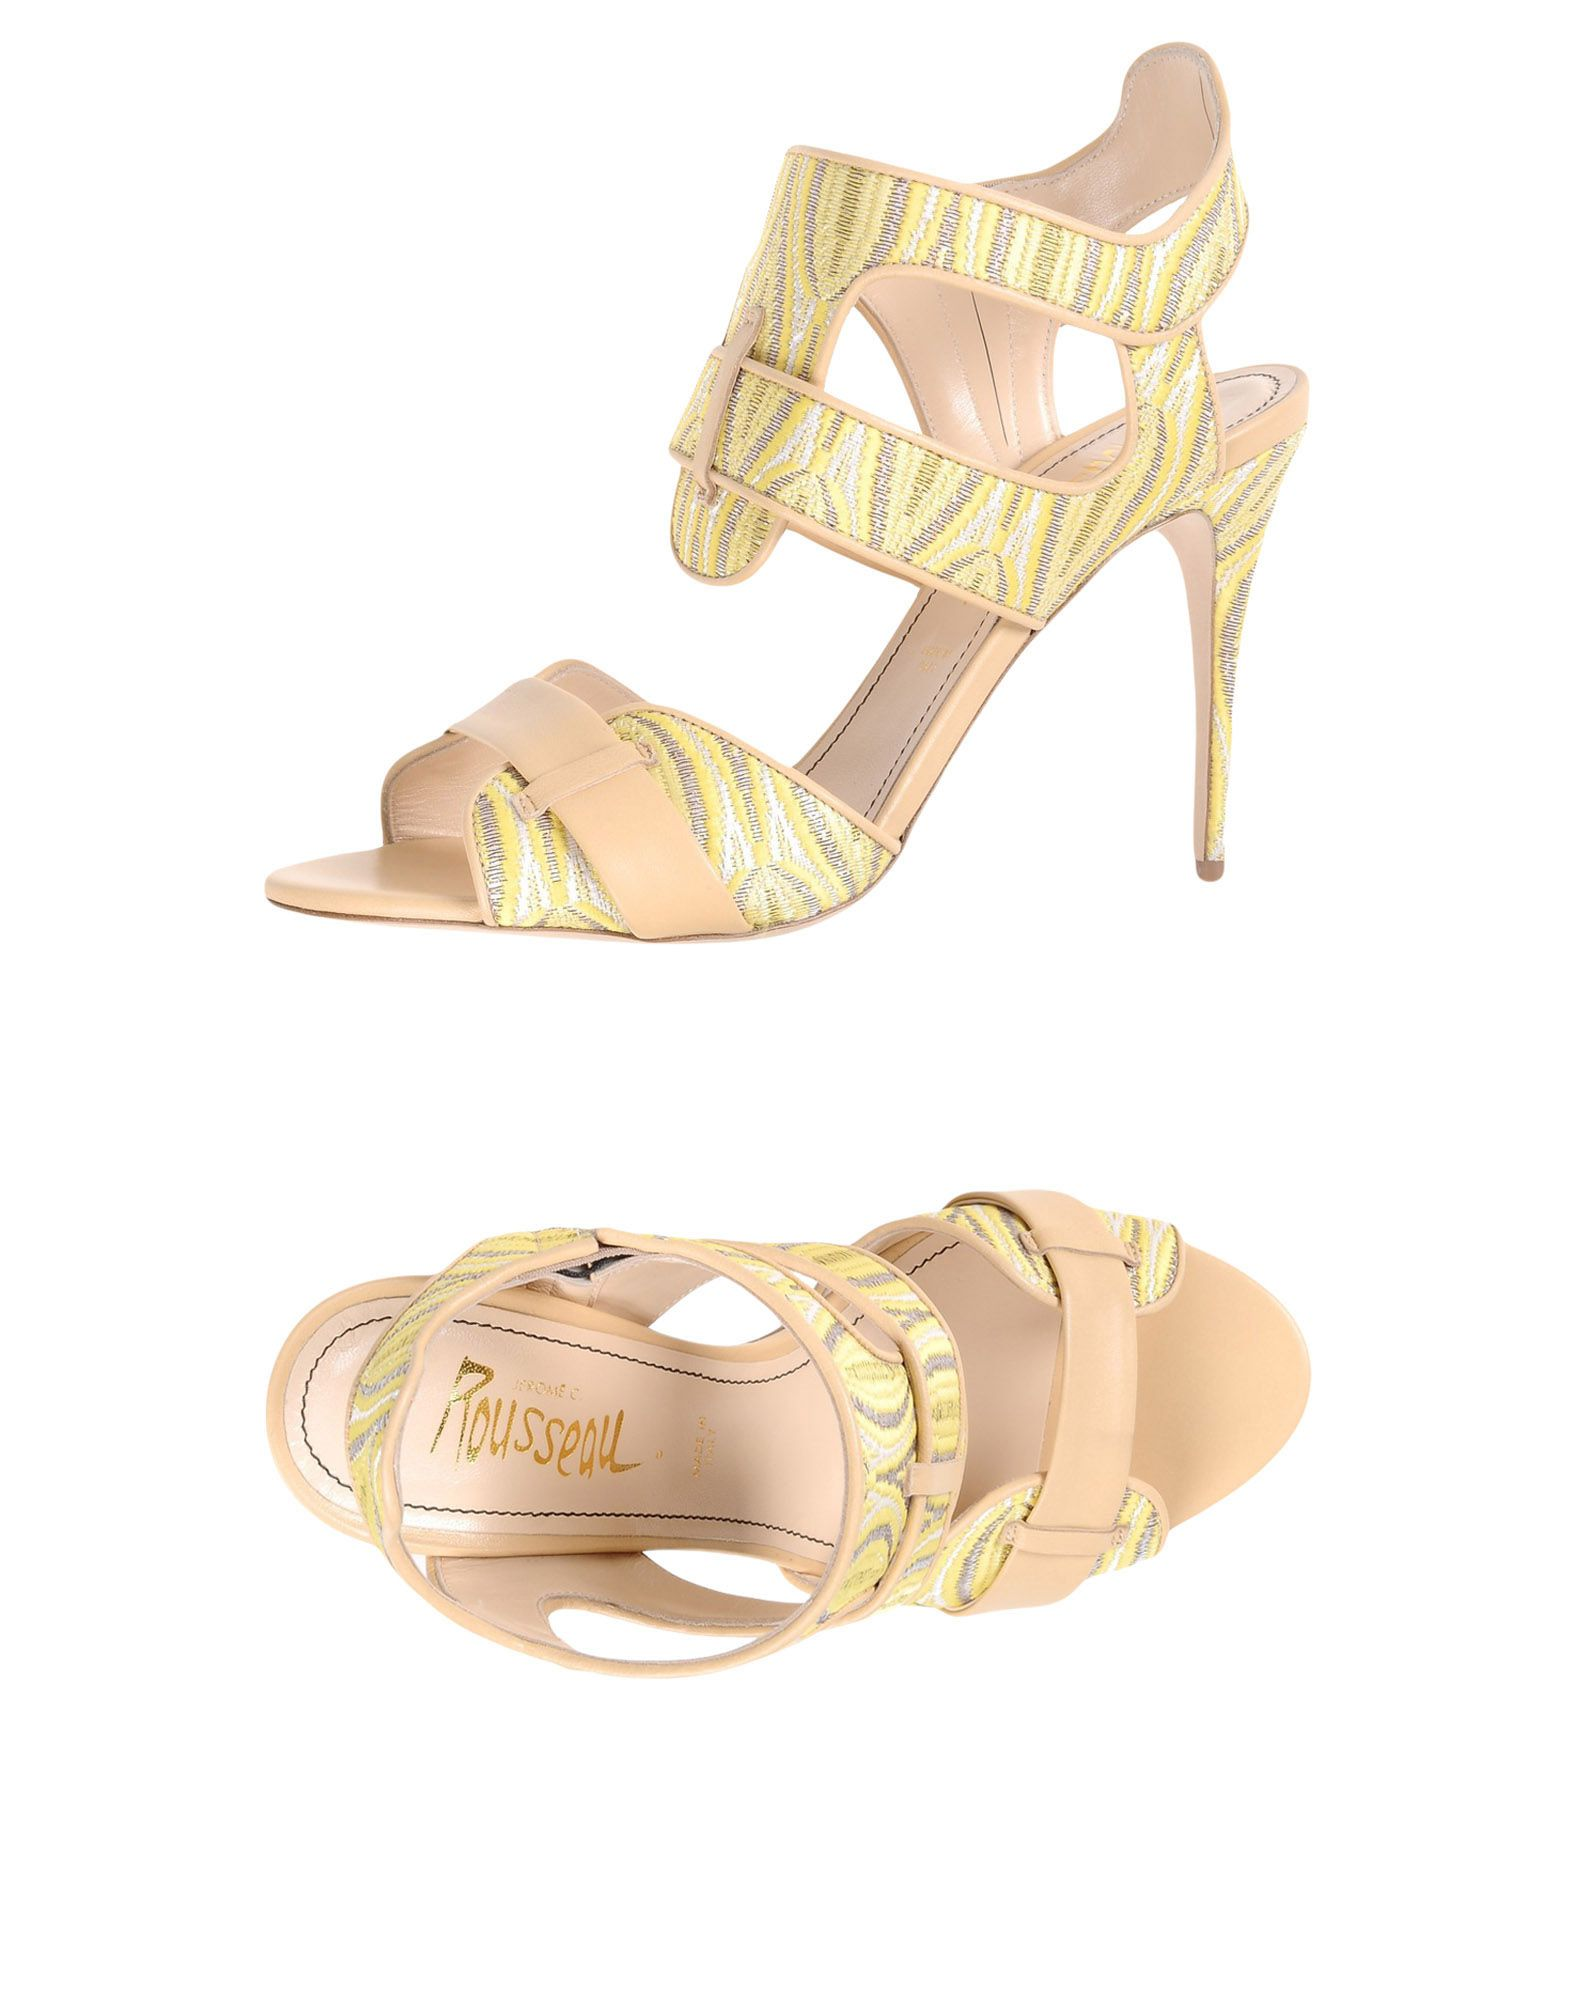 JEROME C. ROUSSEAU Sandals in Yellow